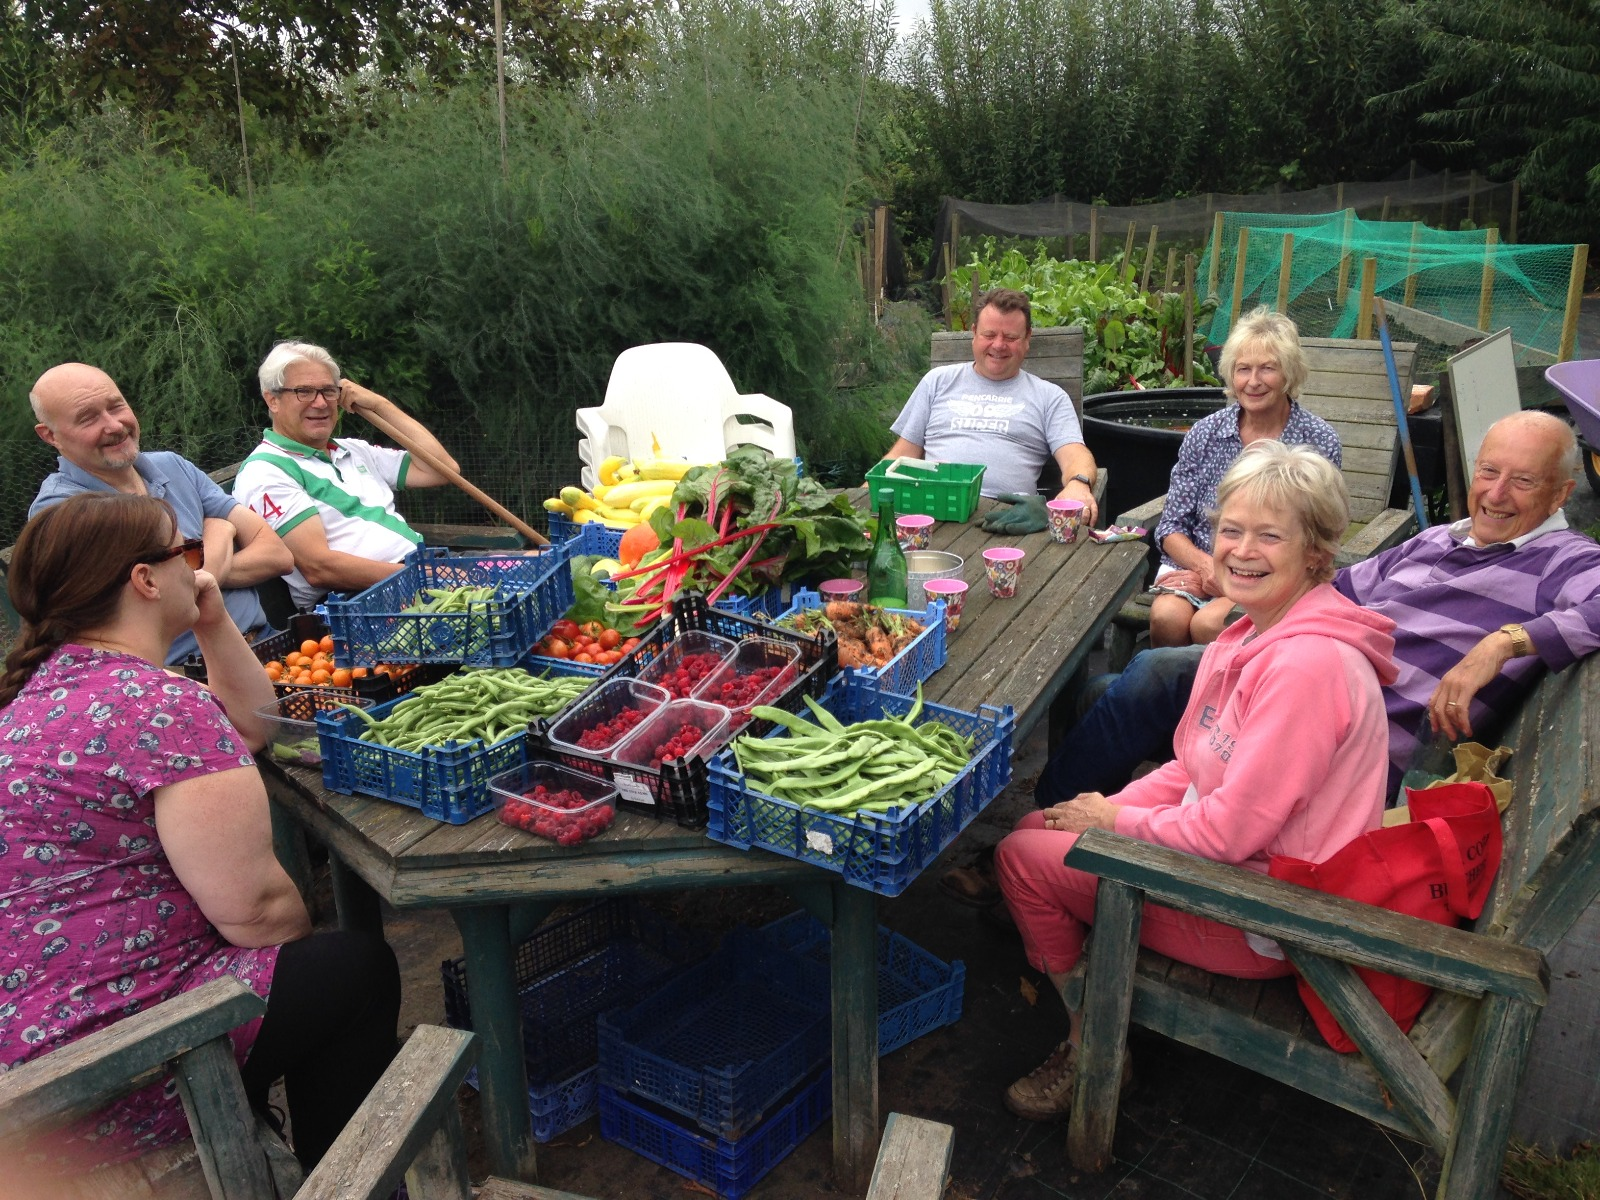 The Weedon Growers